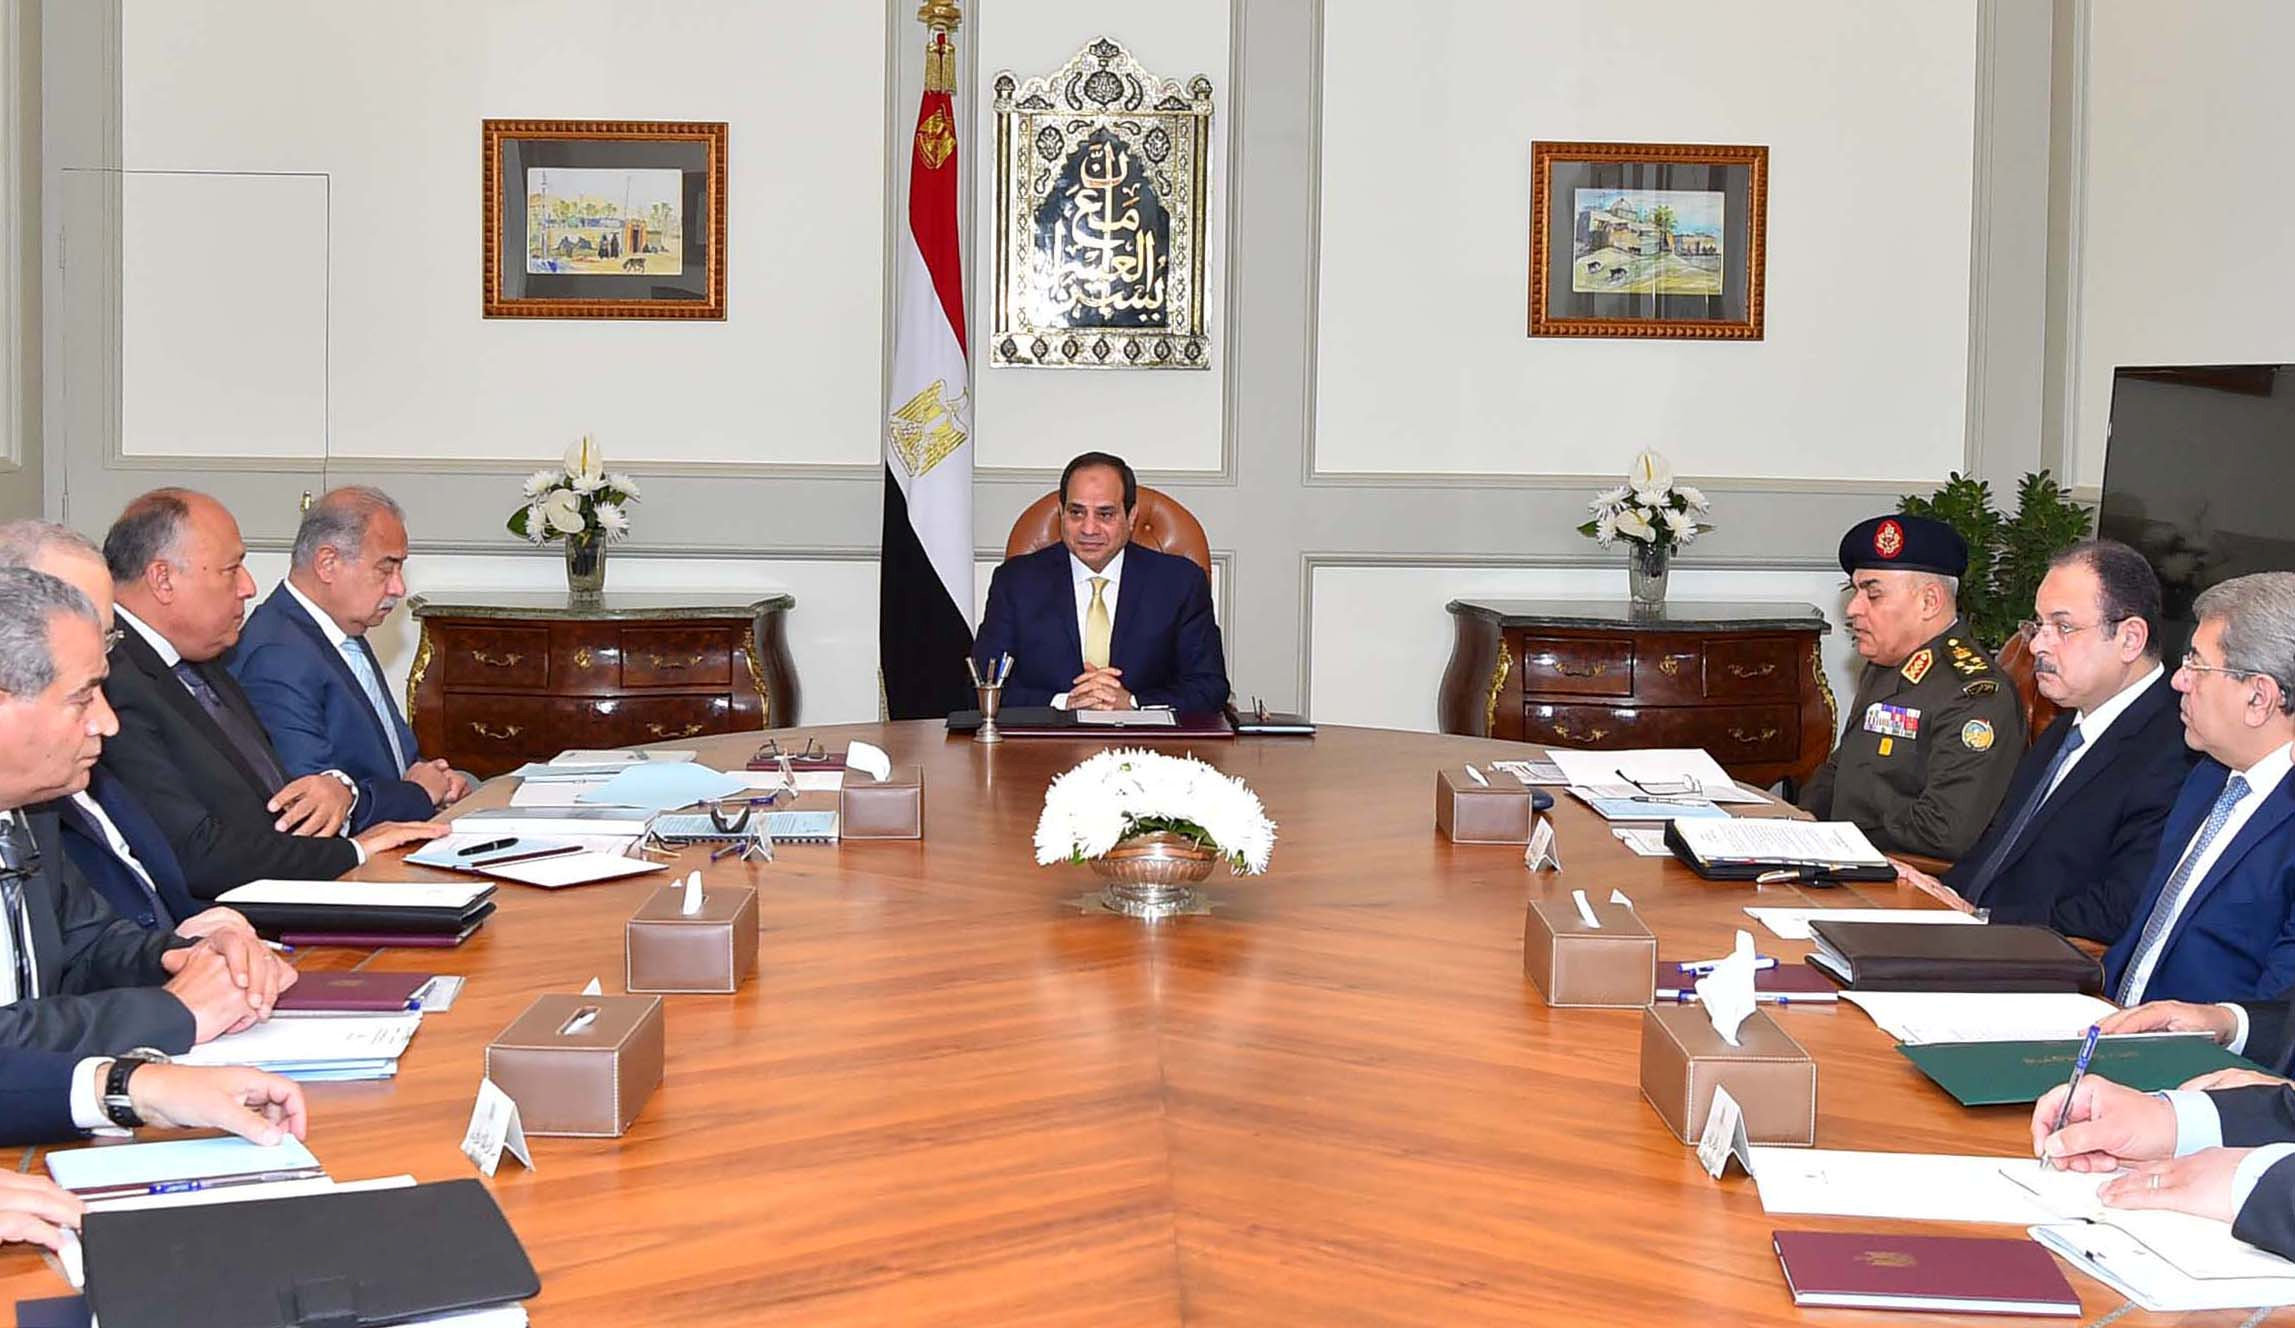 Egyptian President Abdel Fattah al-Sisi (C) meets with his prime Minister Sherif Ismail (4th L) with other ministers and senior State officials at the Ittihadiya presidential palace in Cairo, Egypt March 13, 2017 in this handout picture courtesy of the Egyptian Presidency.